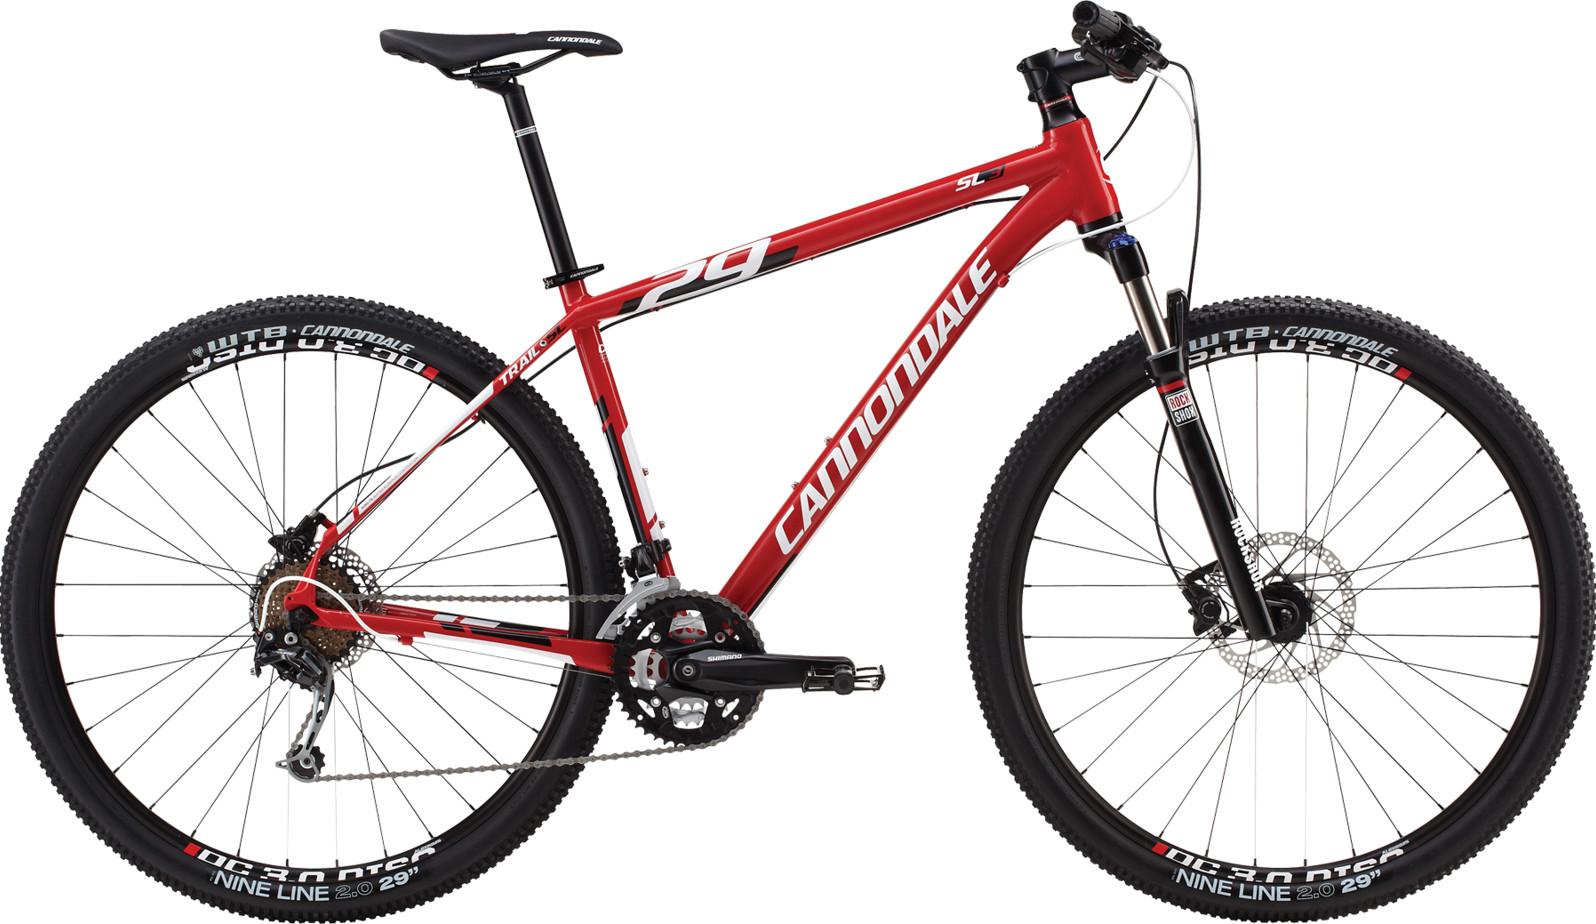 bike - 2014 Cannondale Trail SL 29 3 - red